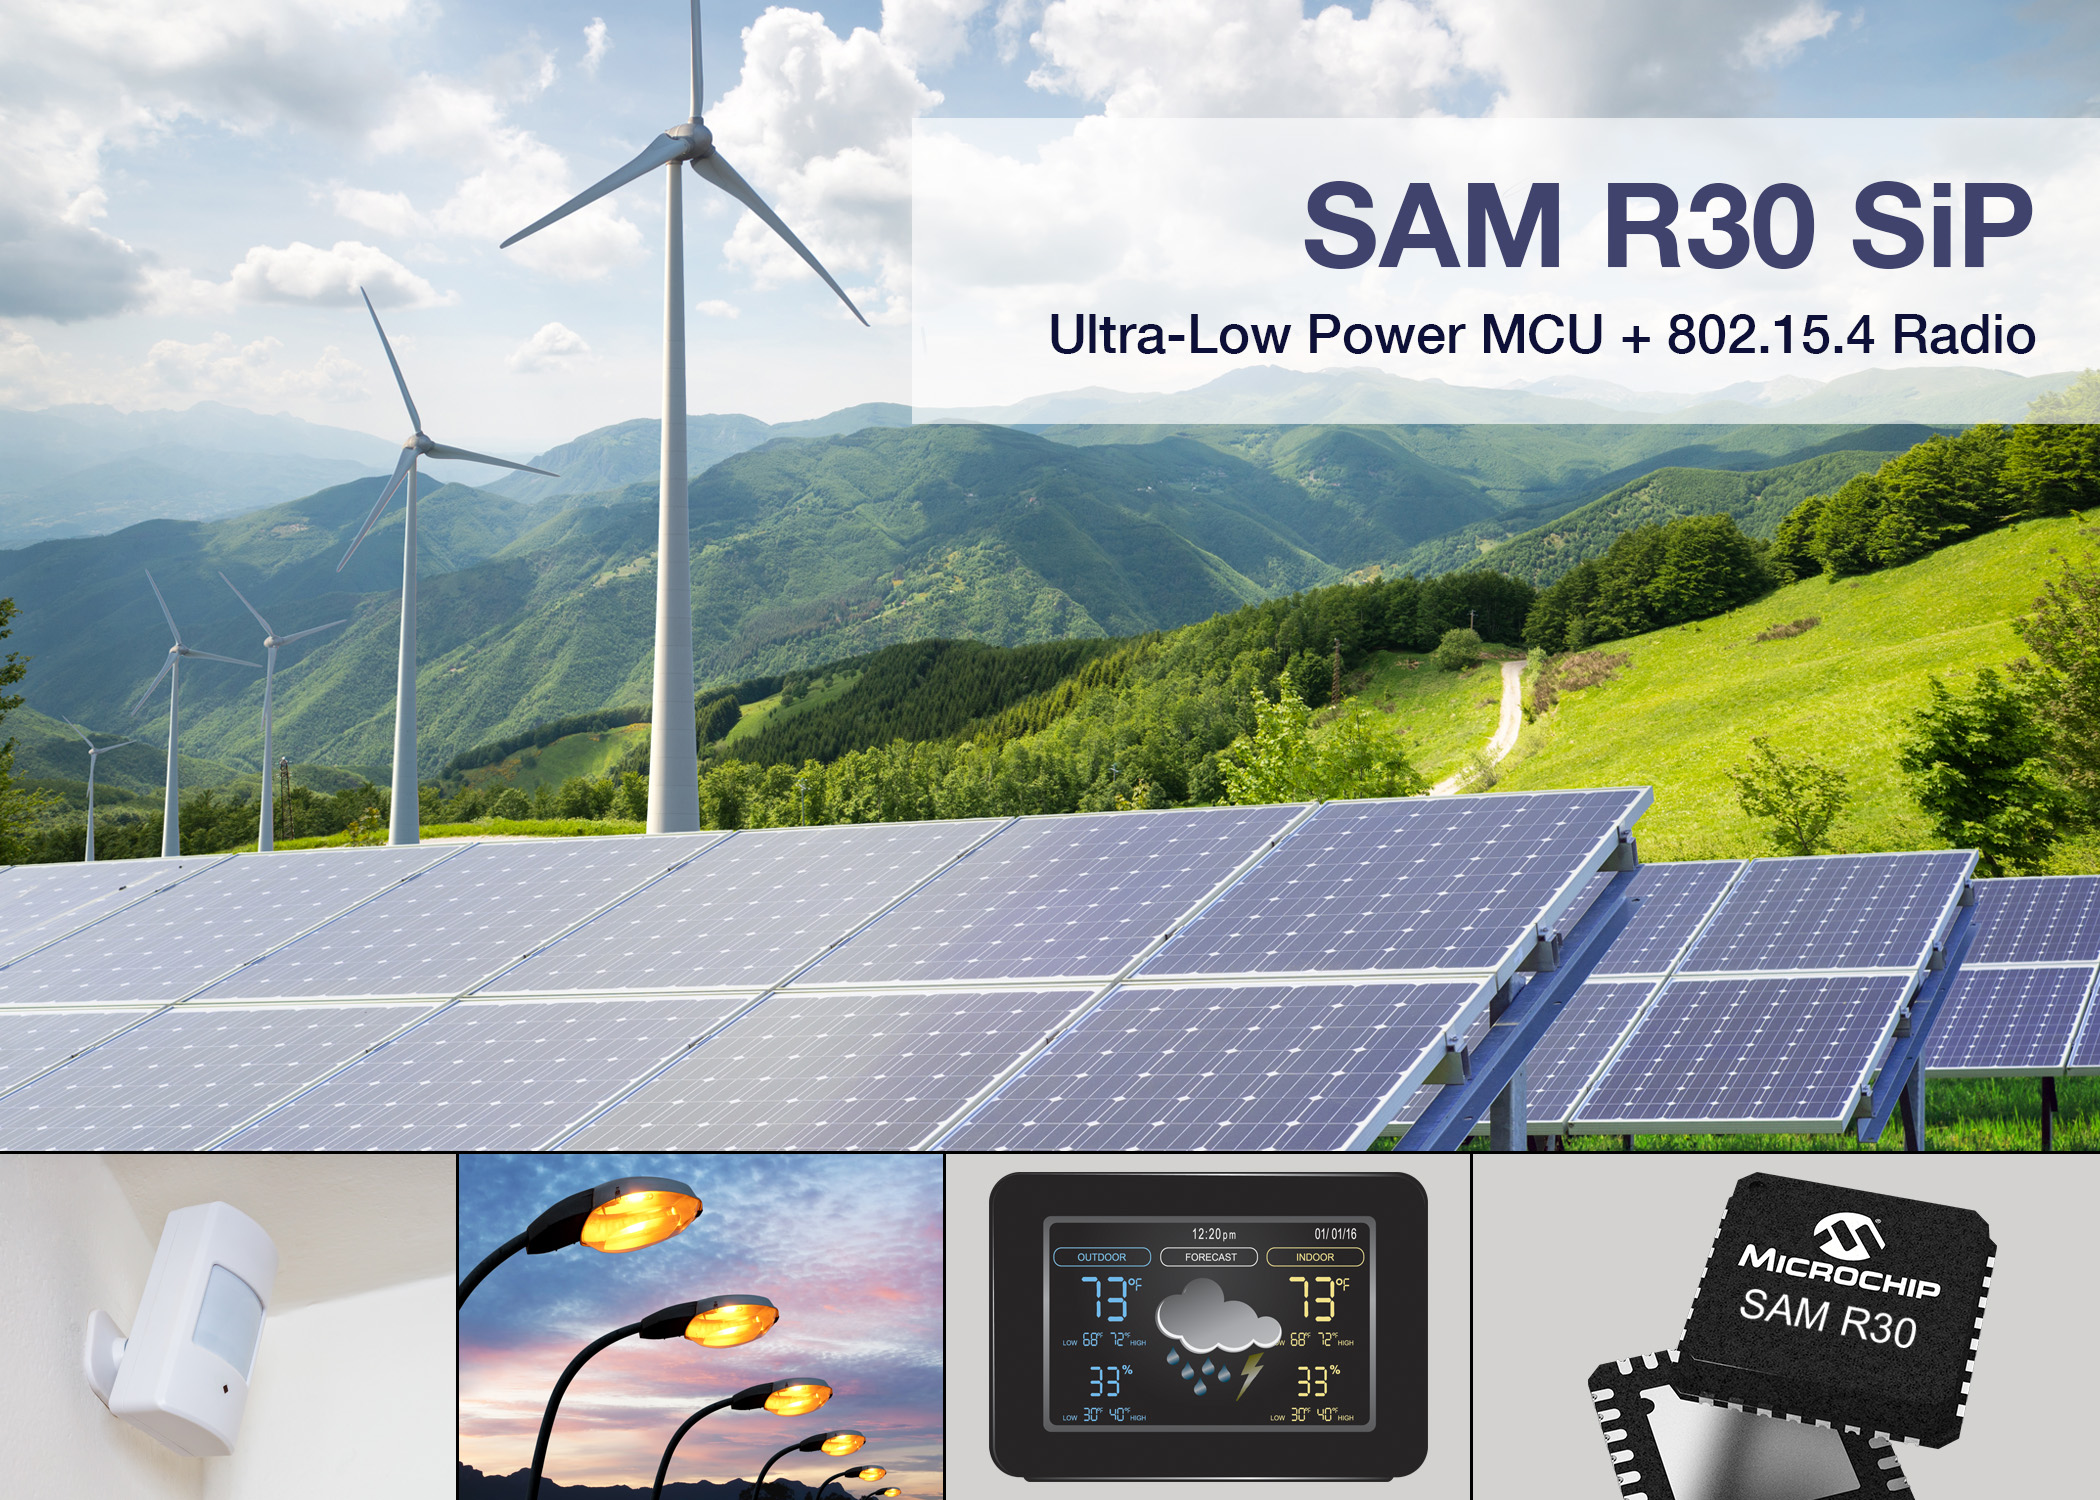 SAM R30 SiP suits wirelessly connected designs